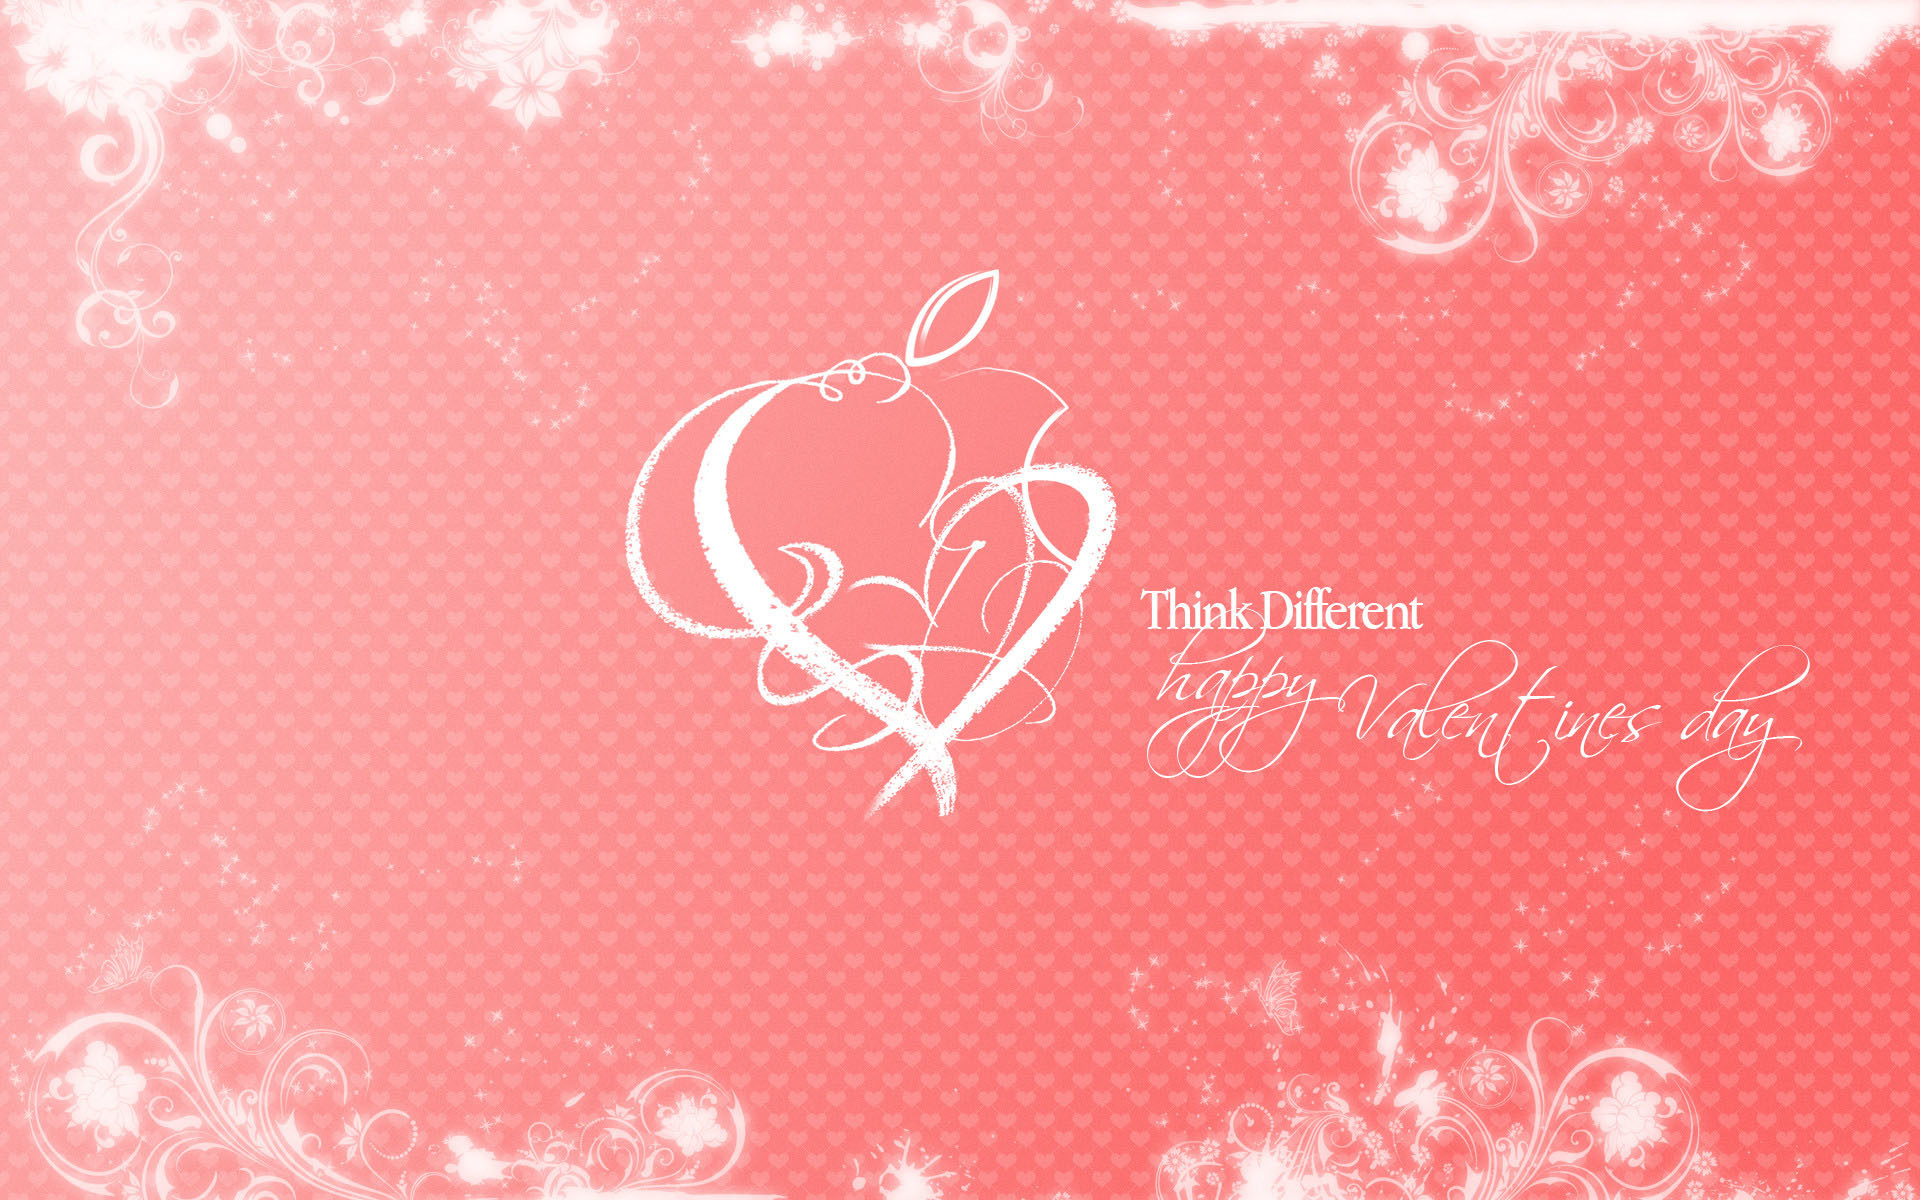 Beautiful and Romantic Valentine's Day HD Wallpapers 15